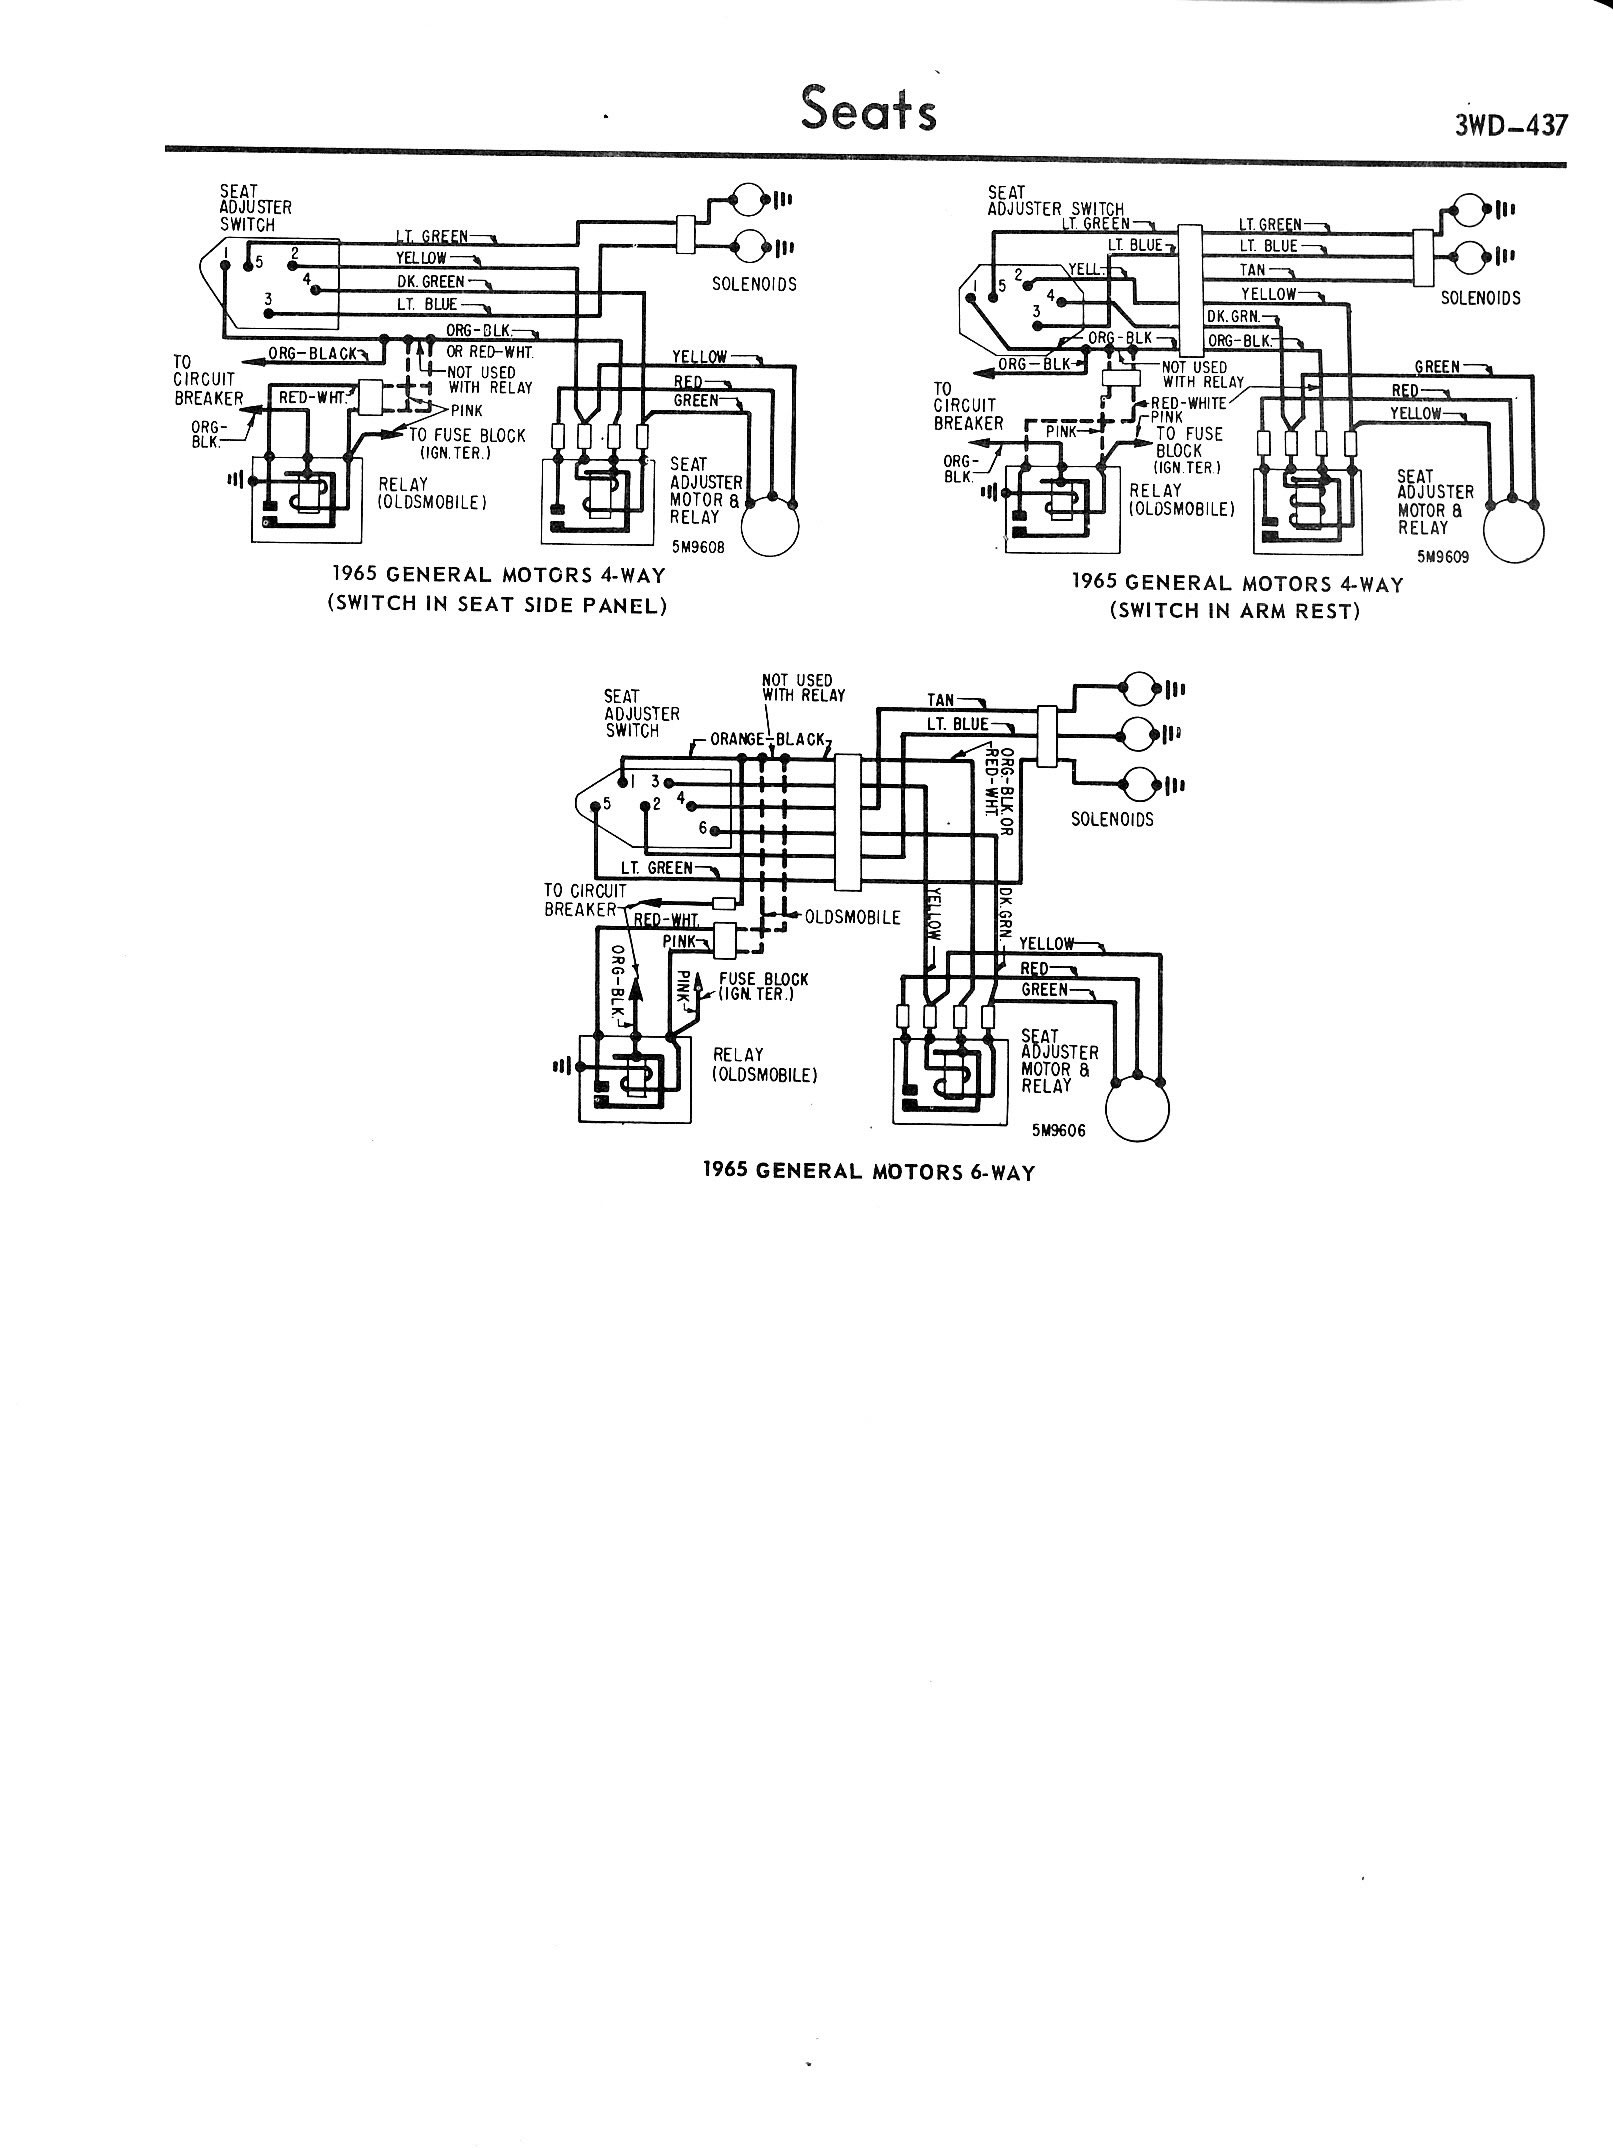 Chevy Diagrams 64 Pickup Wiring Diagram D 57 Gm